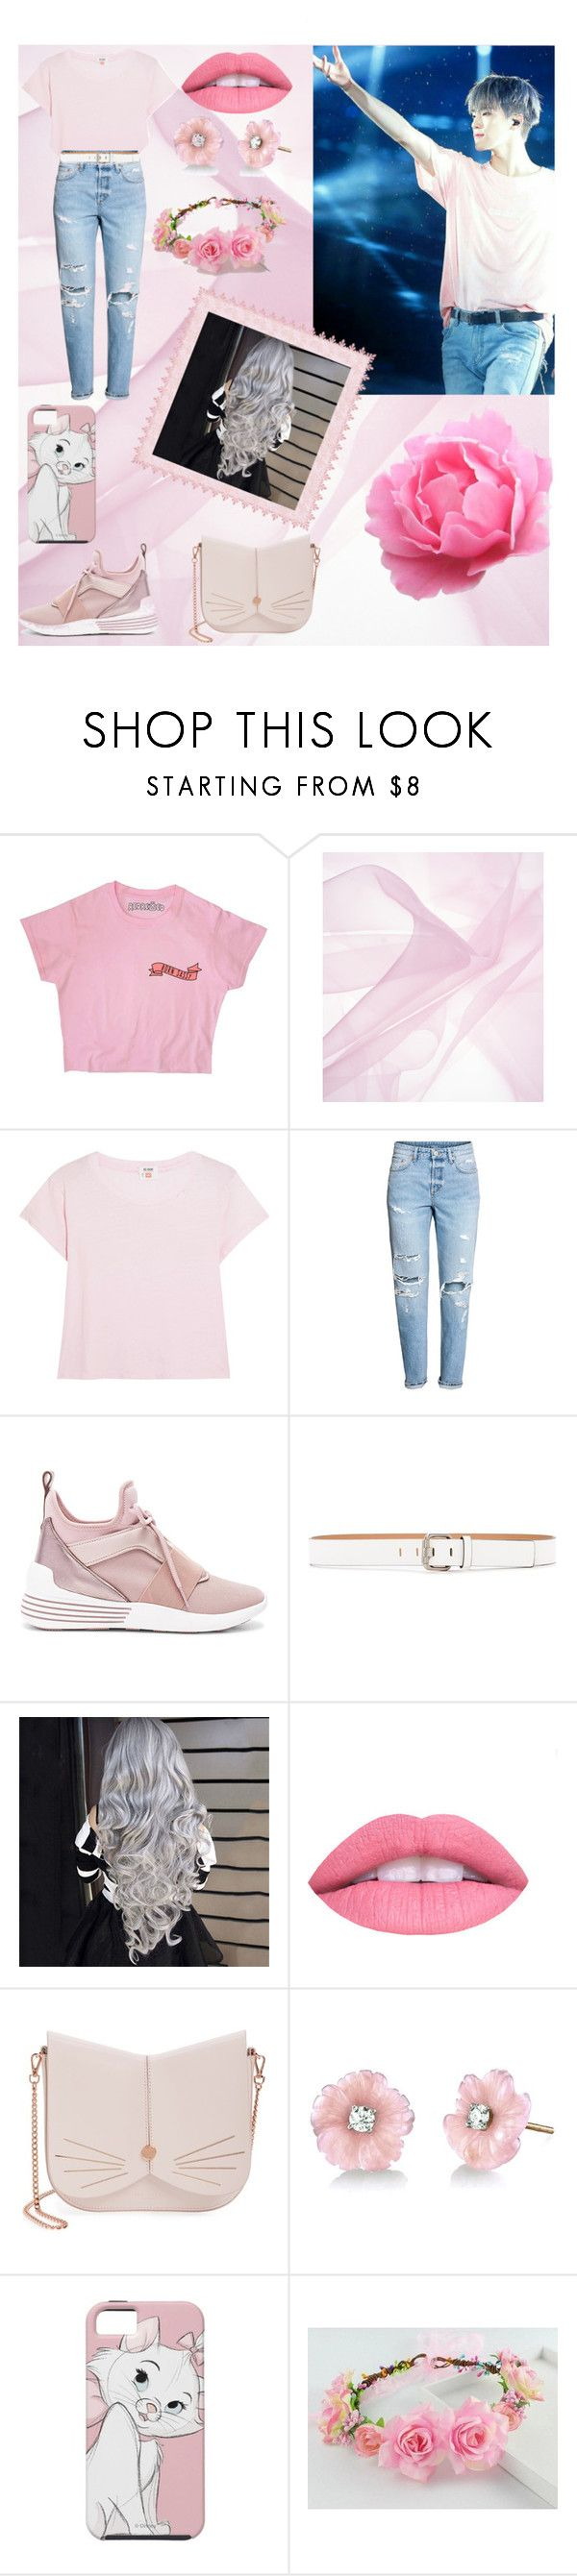 """Untitled #27"" by esenklovazamat ❤ liked on Polyvore featuring RE/DONE, Kendall + Kylie, Calvin Klein Jeans, L.A. Girl, Ted Baker and Irene Neuwirth"